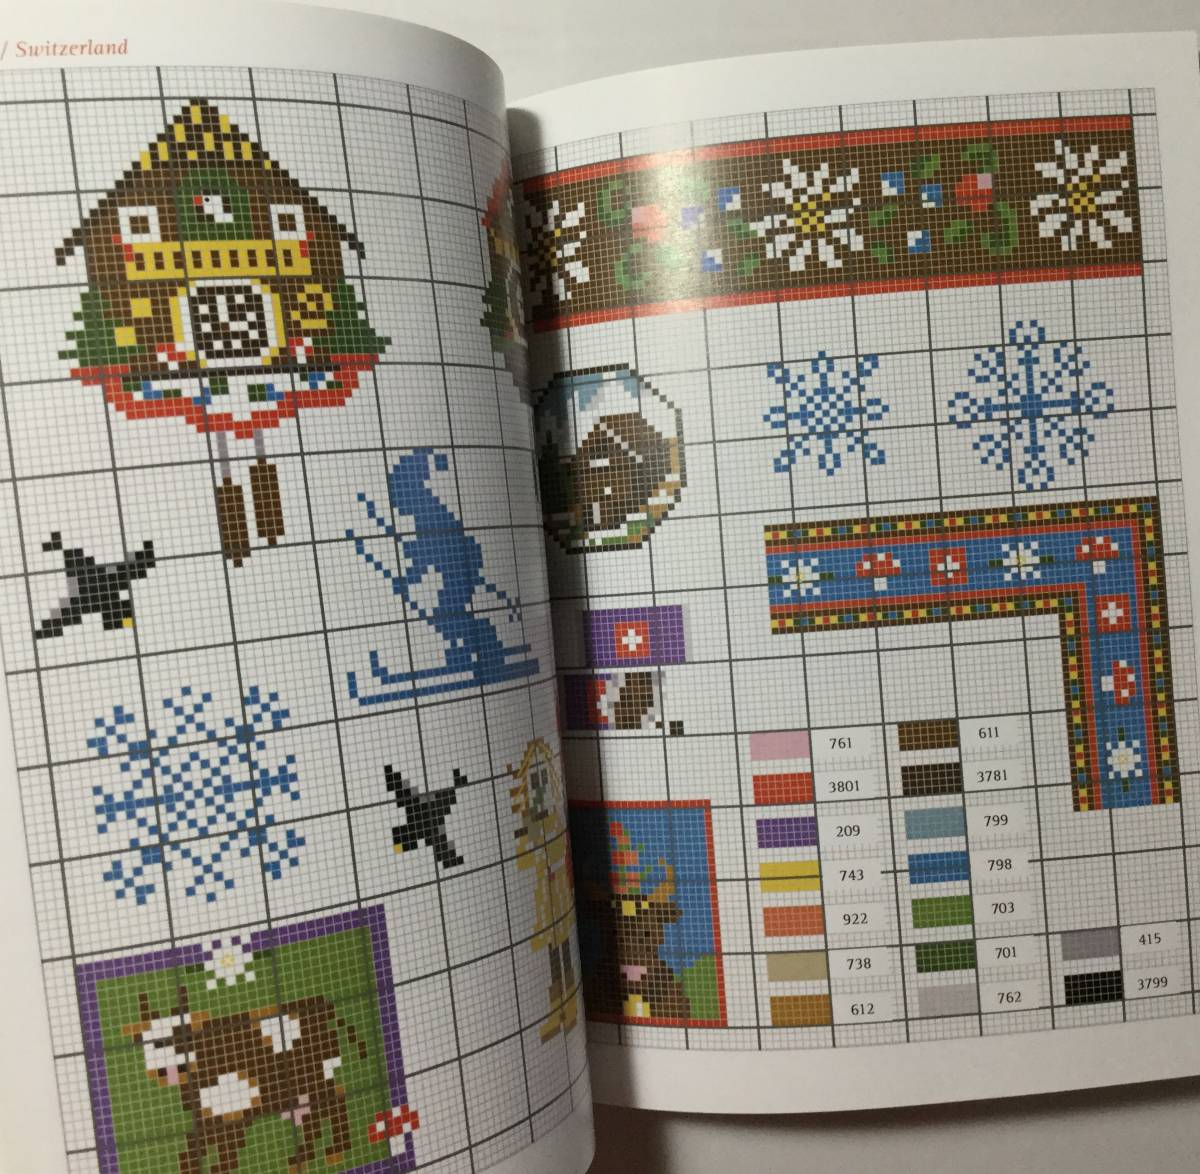 ■ARTBOOK_OUTLET■ 1-059 ★ 手芸本 新品 フランス 刺繍 クロスステッチ CROSS STITCH 図案 SPECIAL EDITION AROUND THE WORLD 希少本_画像4